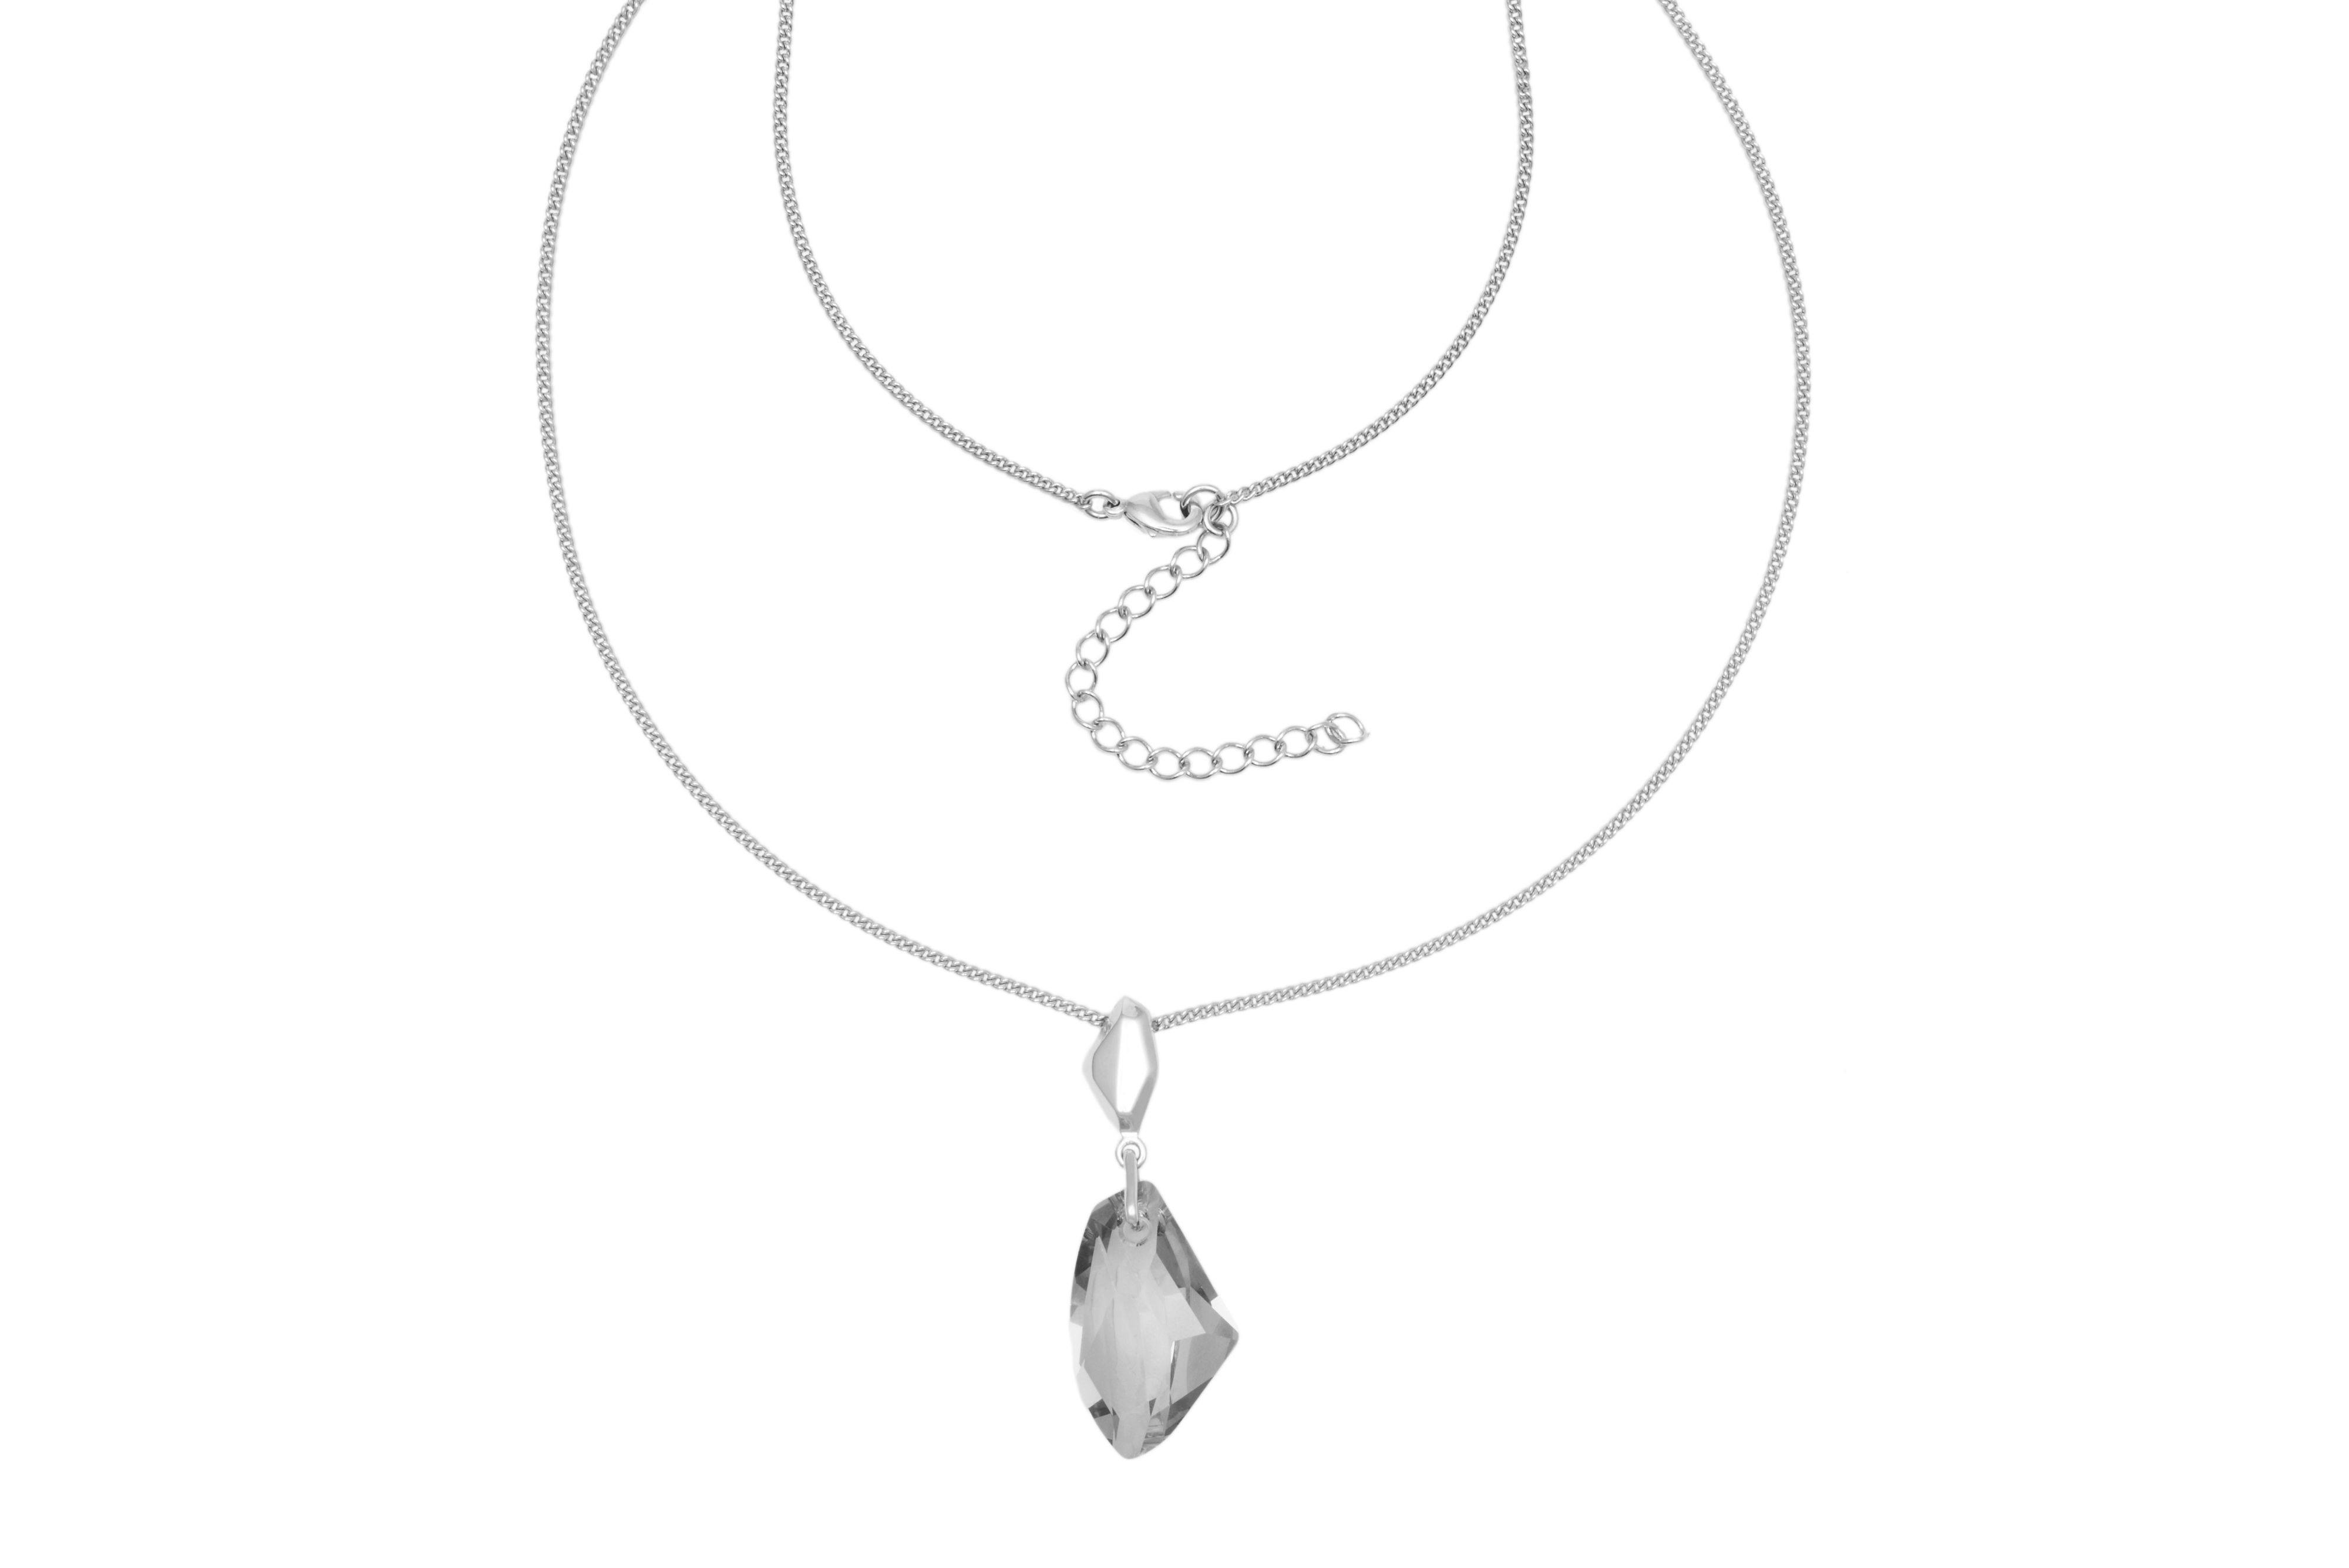 18ct White Gold Plated Pendant